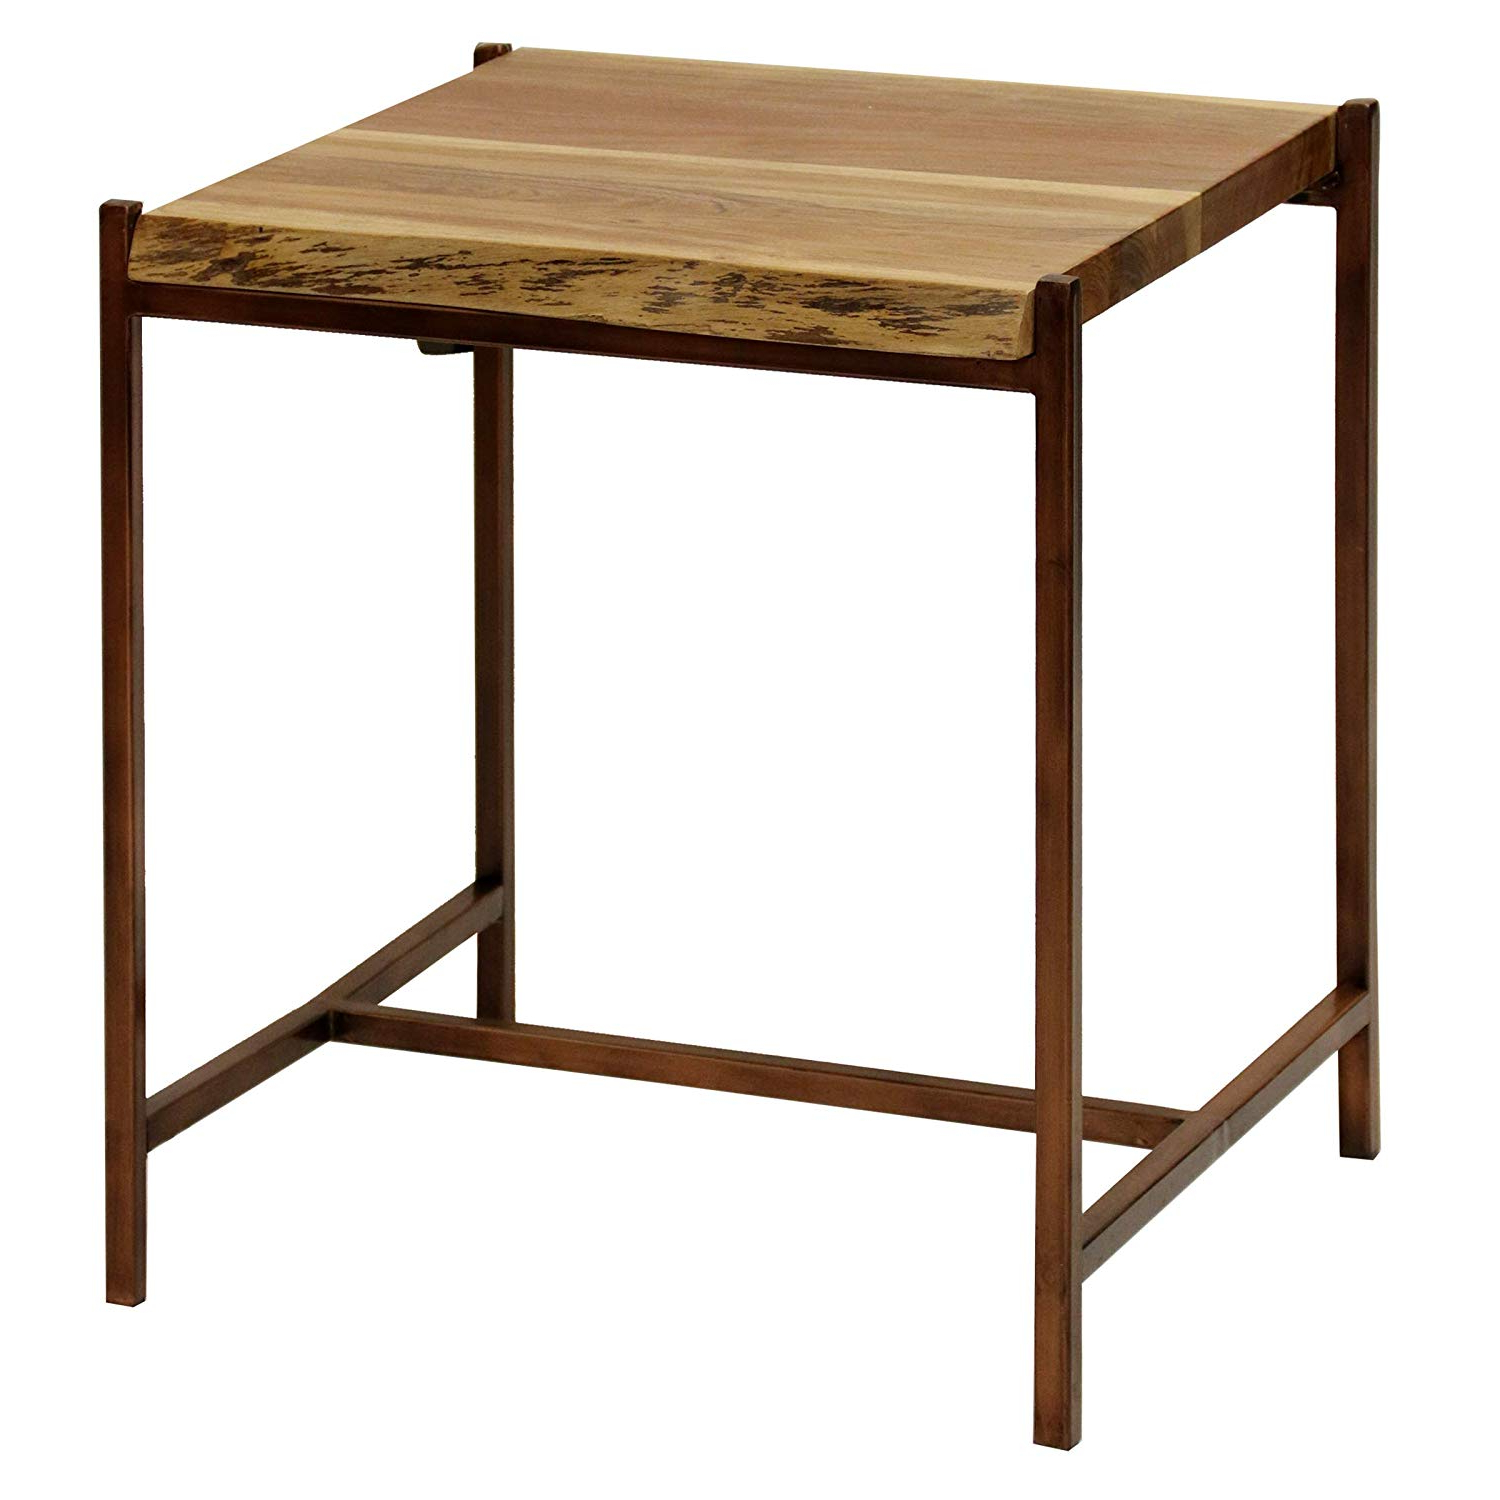 Acacia Dining Tables With Black Rocket Legs With Regard To Well Known Amazon: Collective Design Transitional Solid Acacia Wood (View 25 of 25)